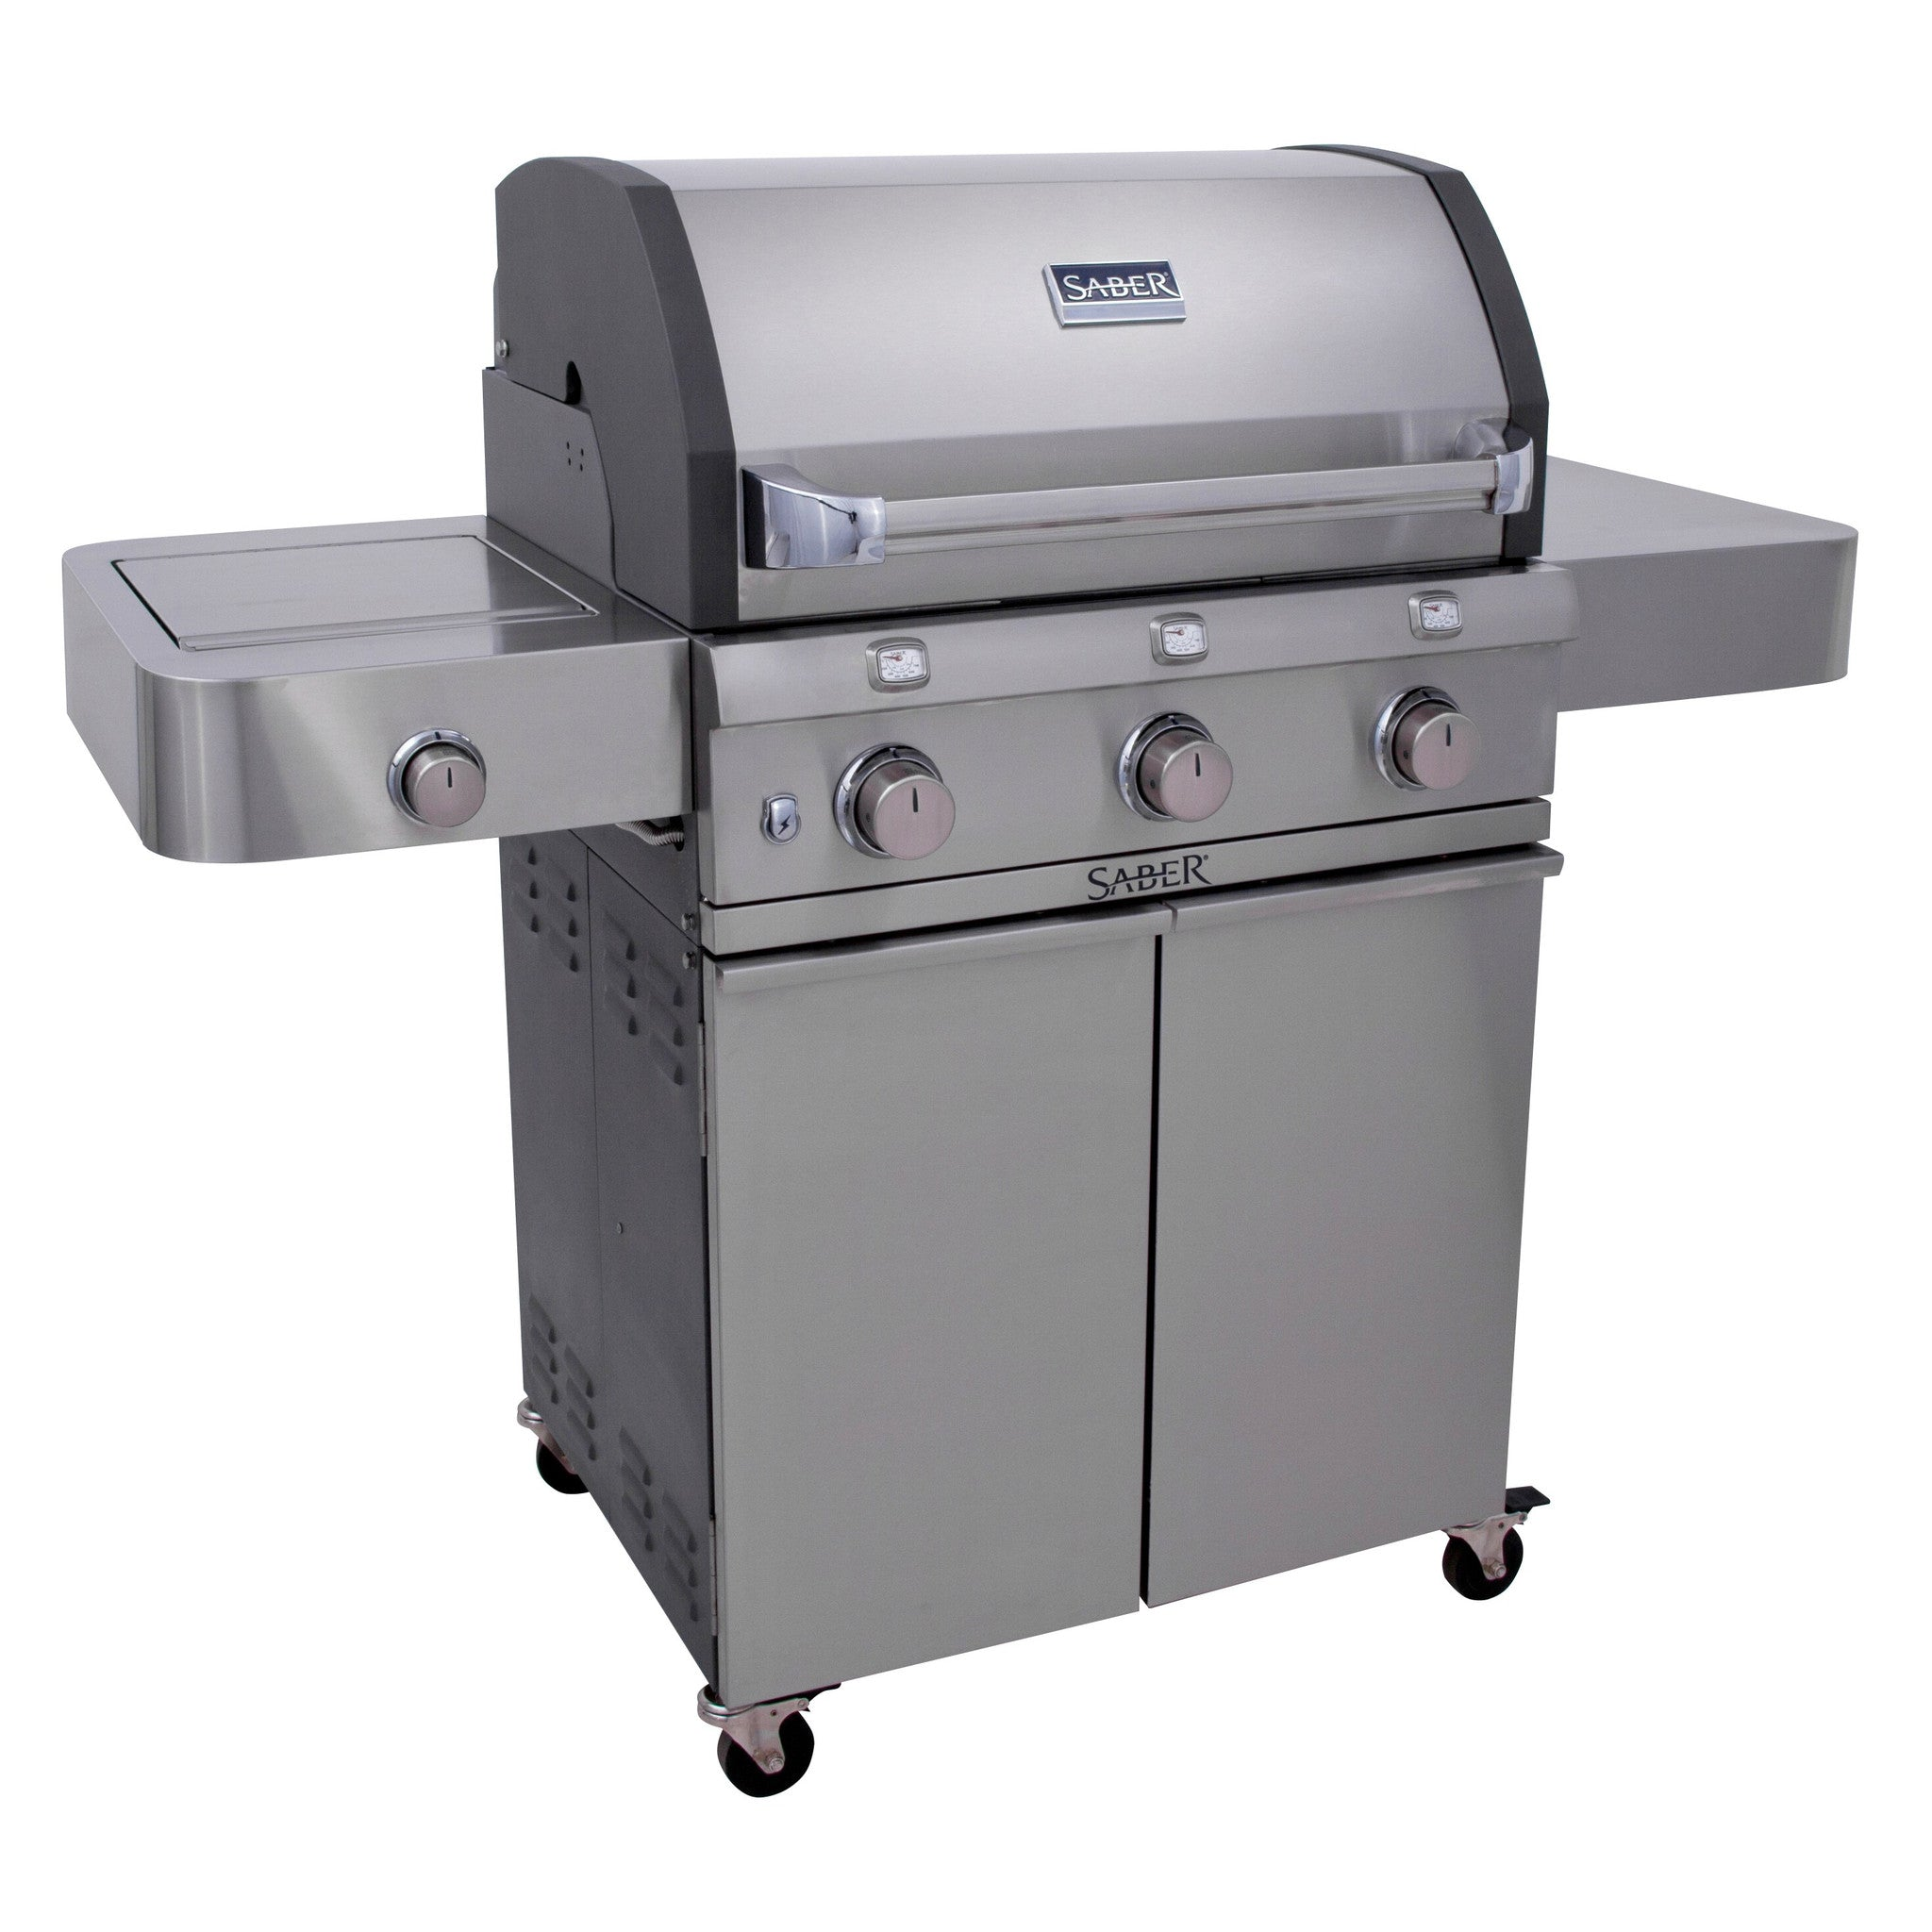 SABER Cast 500 Infrared Gas Grill